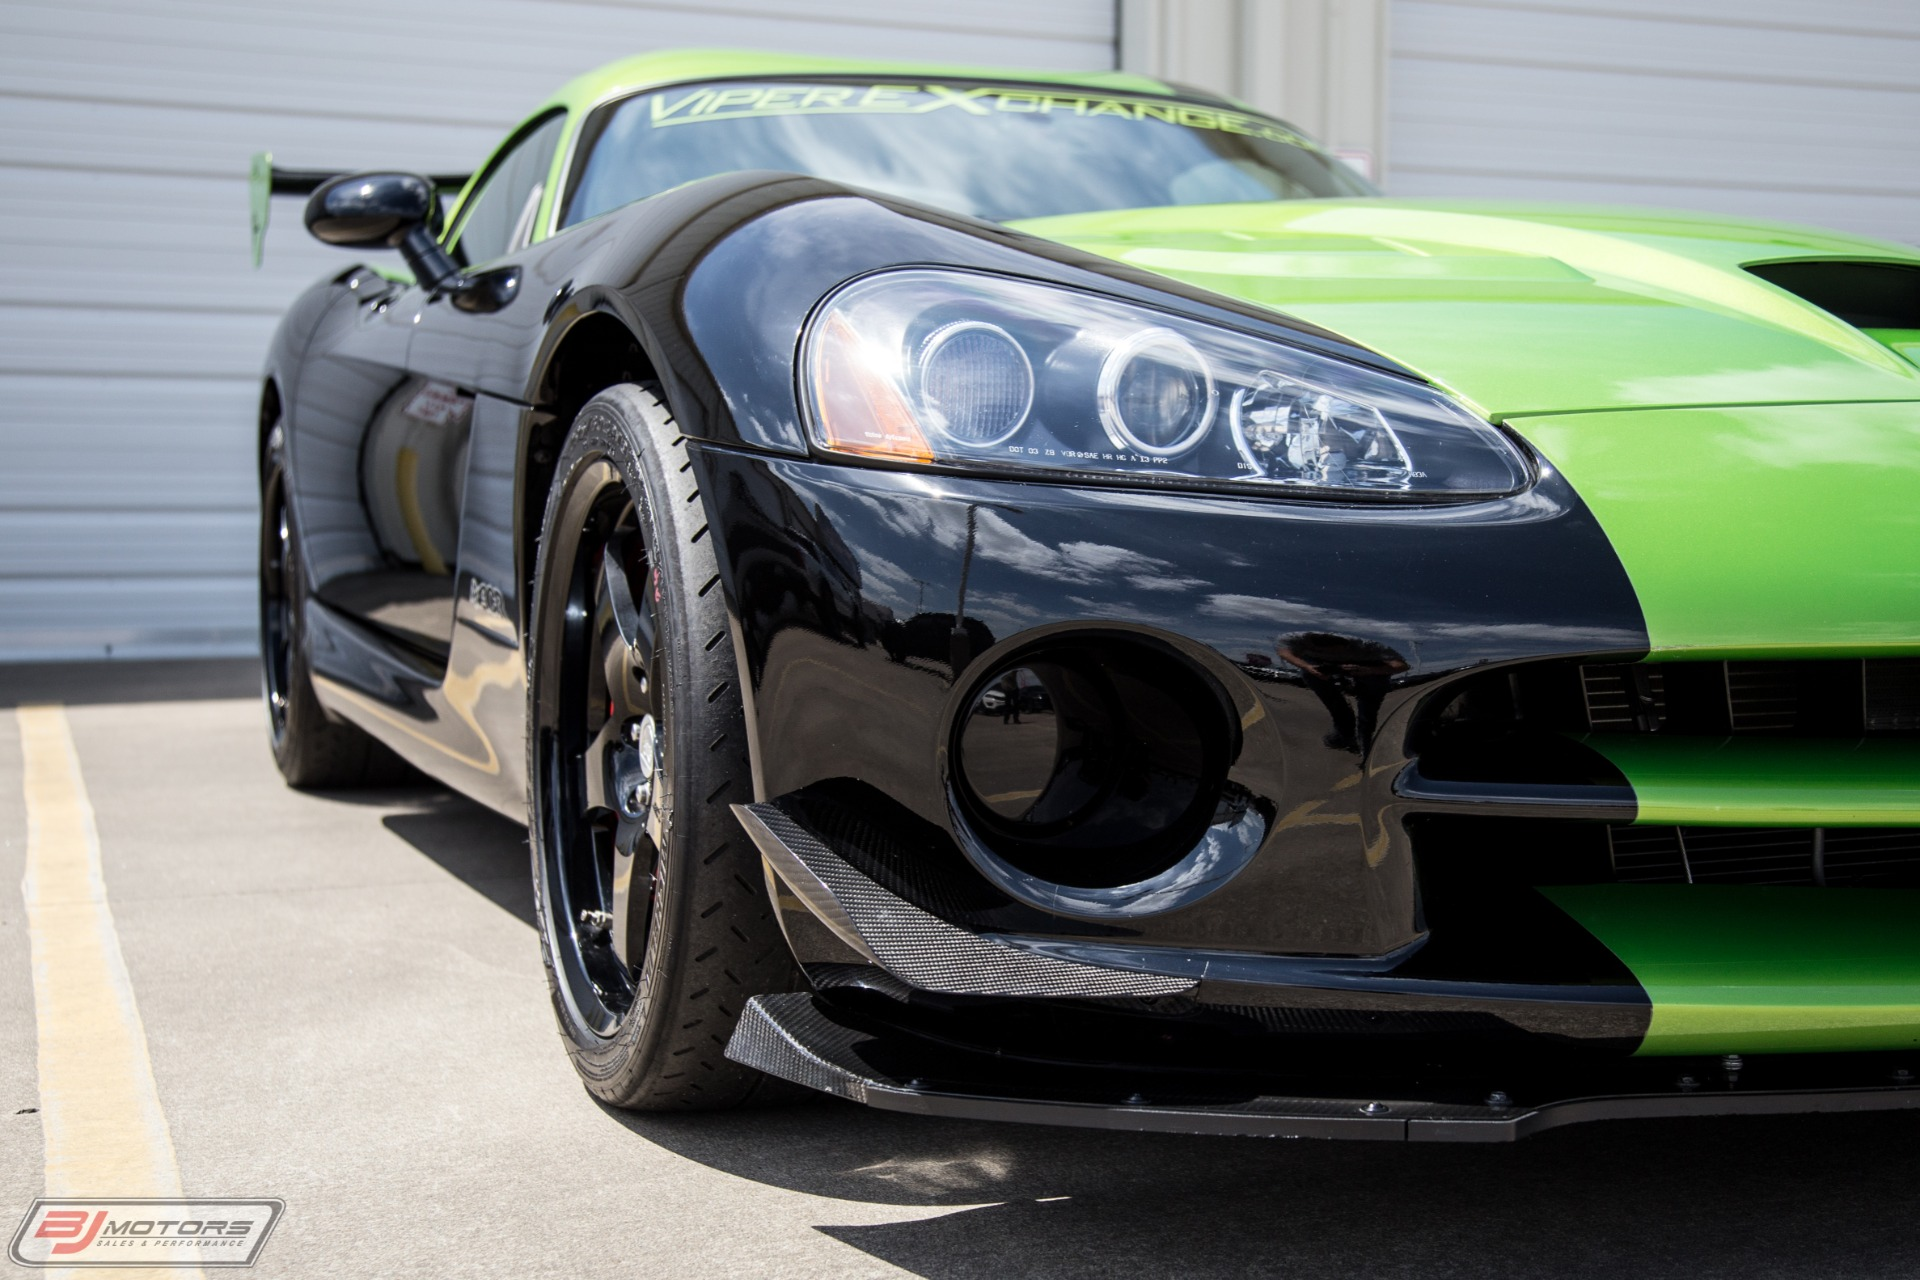 Used-2010-Dodge-Viper-ACR-Nurburgring-Edition